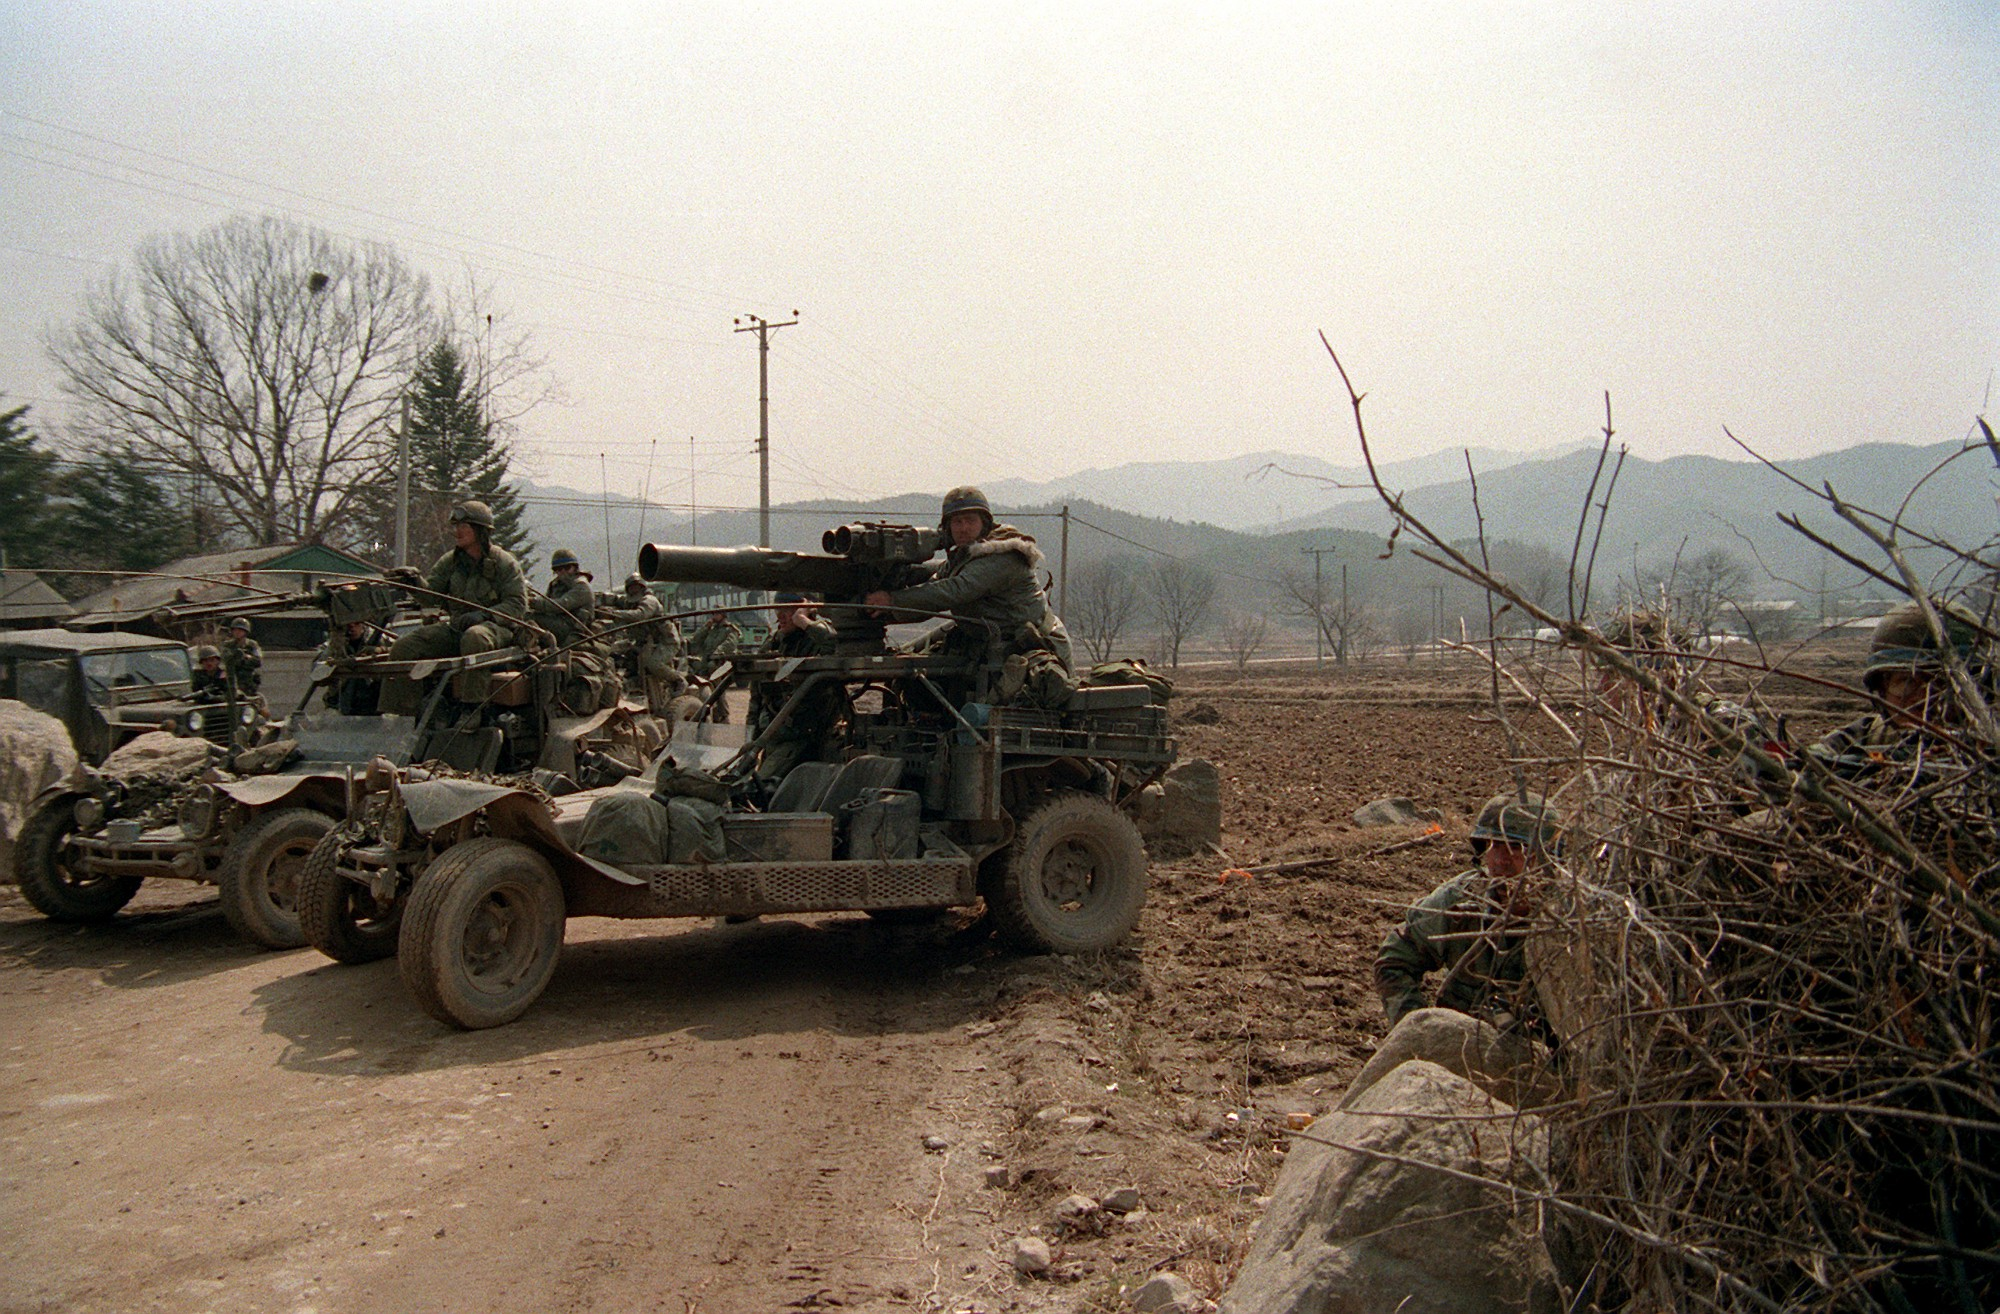 Military Sand Rail : The u s army had a whole battalion of armed dune buggies